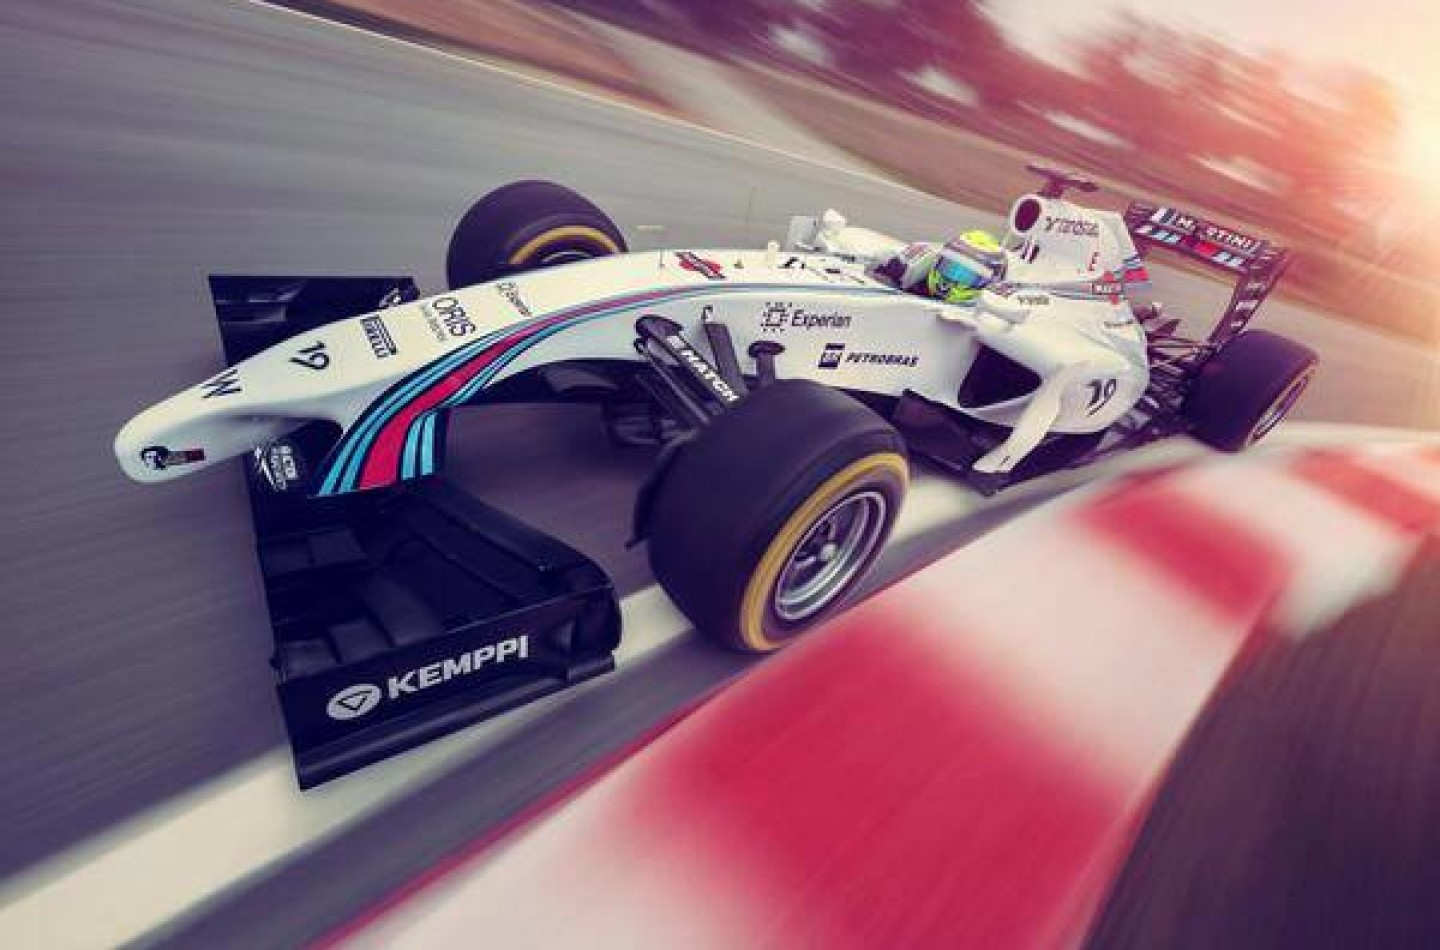 Martini torna in F1 con la Williams: nasce la Williams Martini Racing